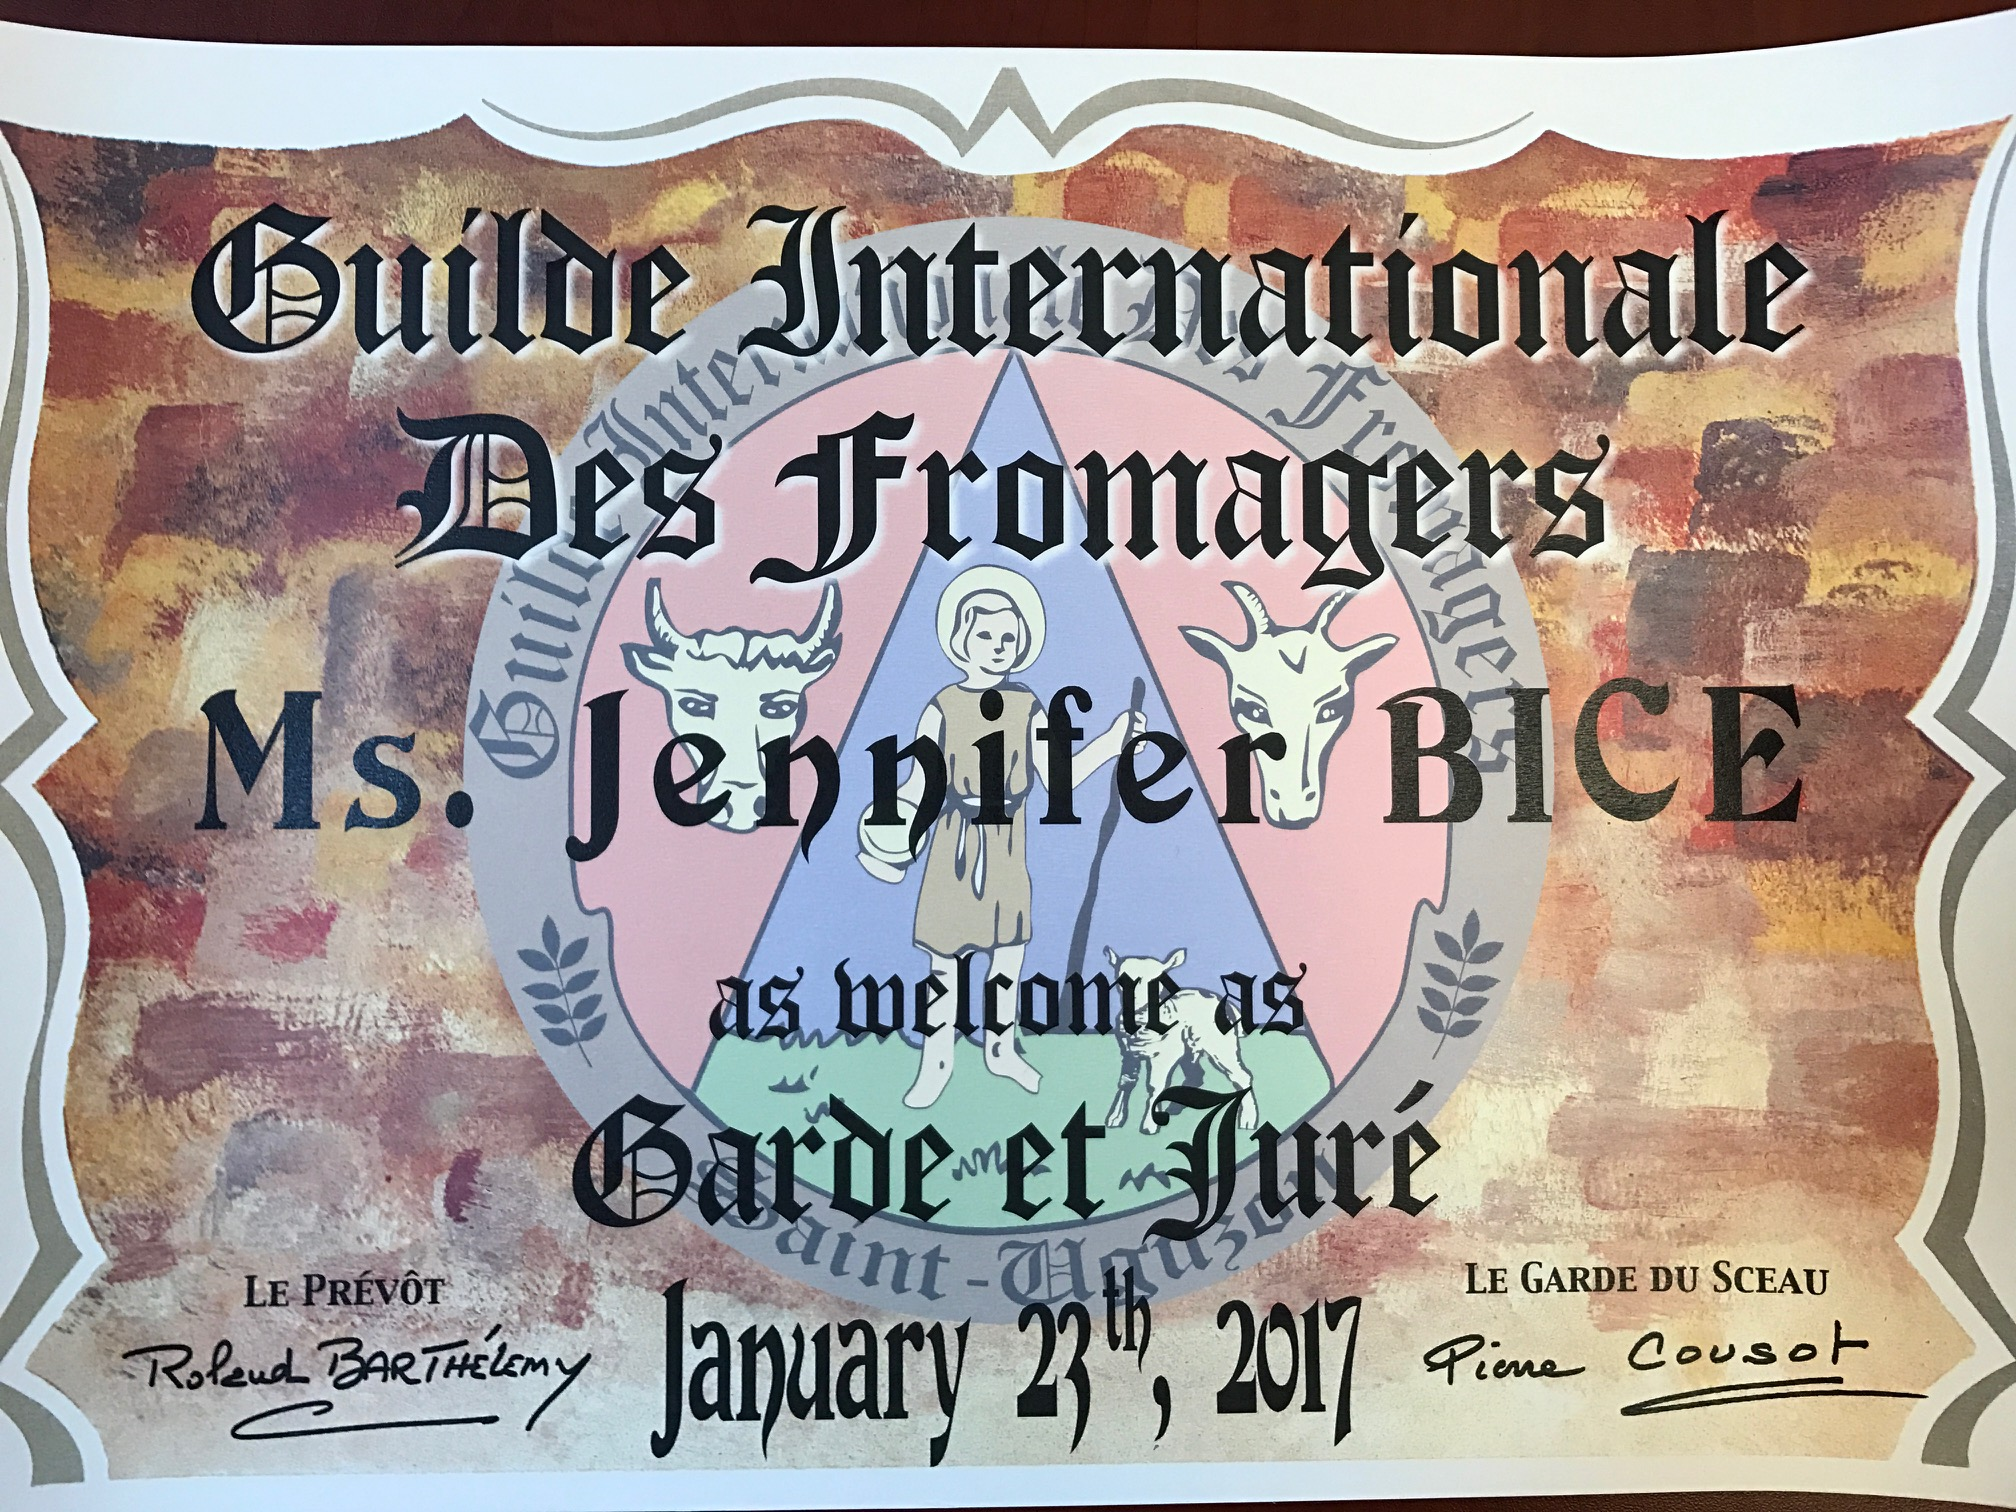 Guilde des Fromagers certificate